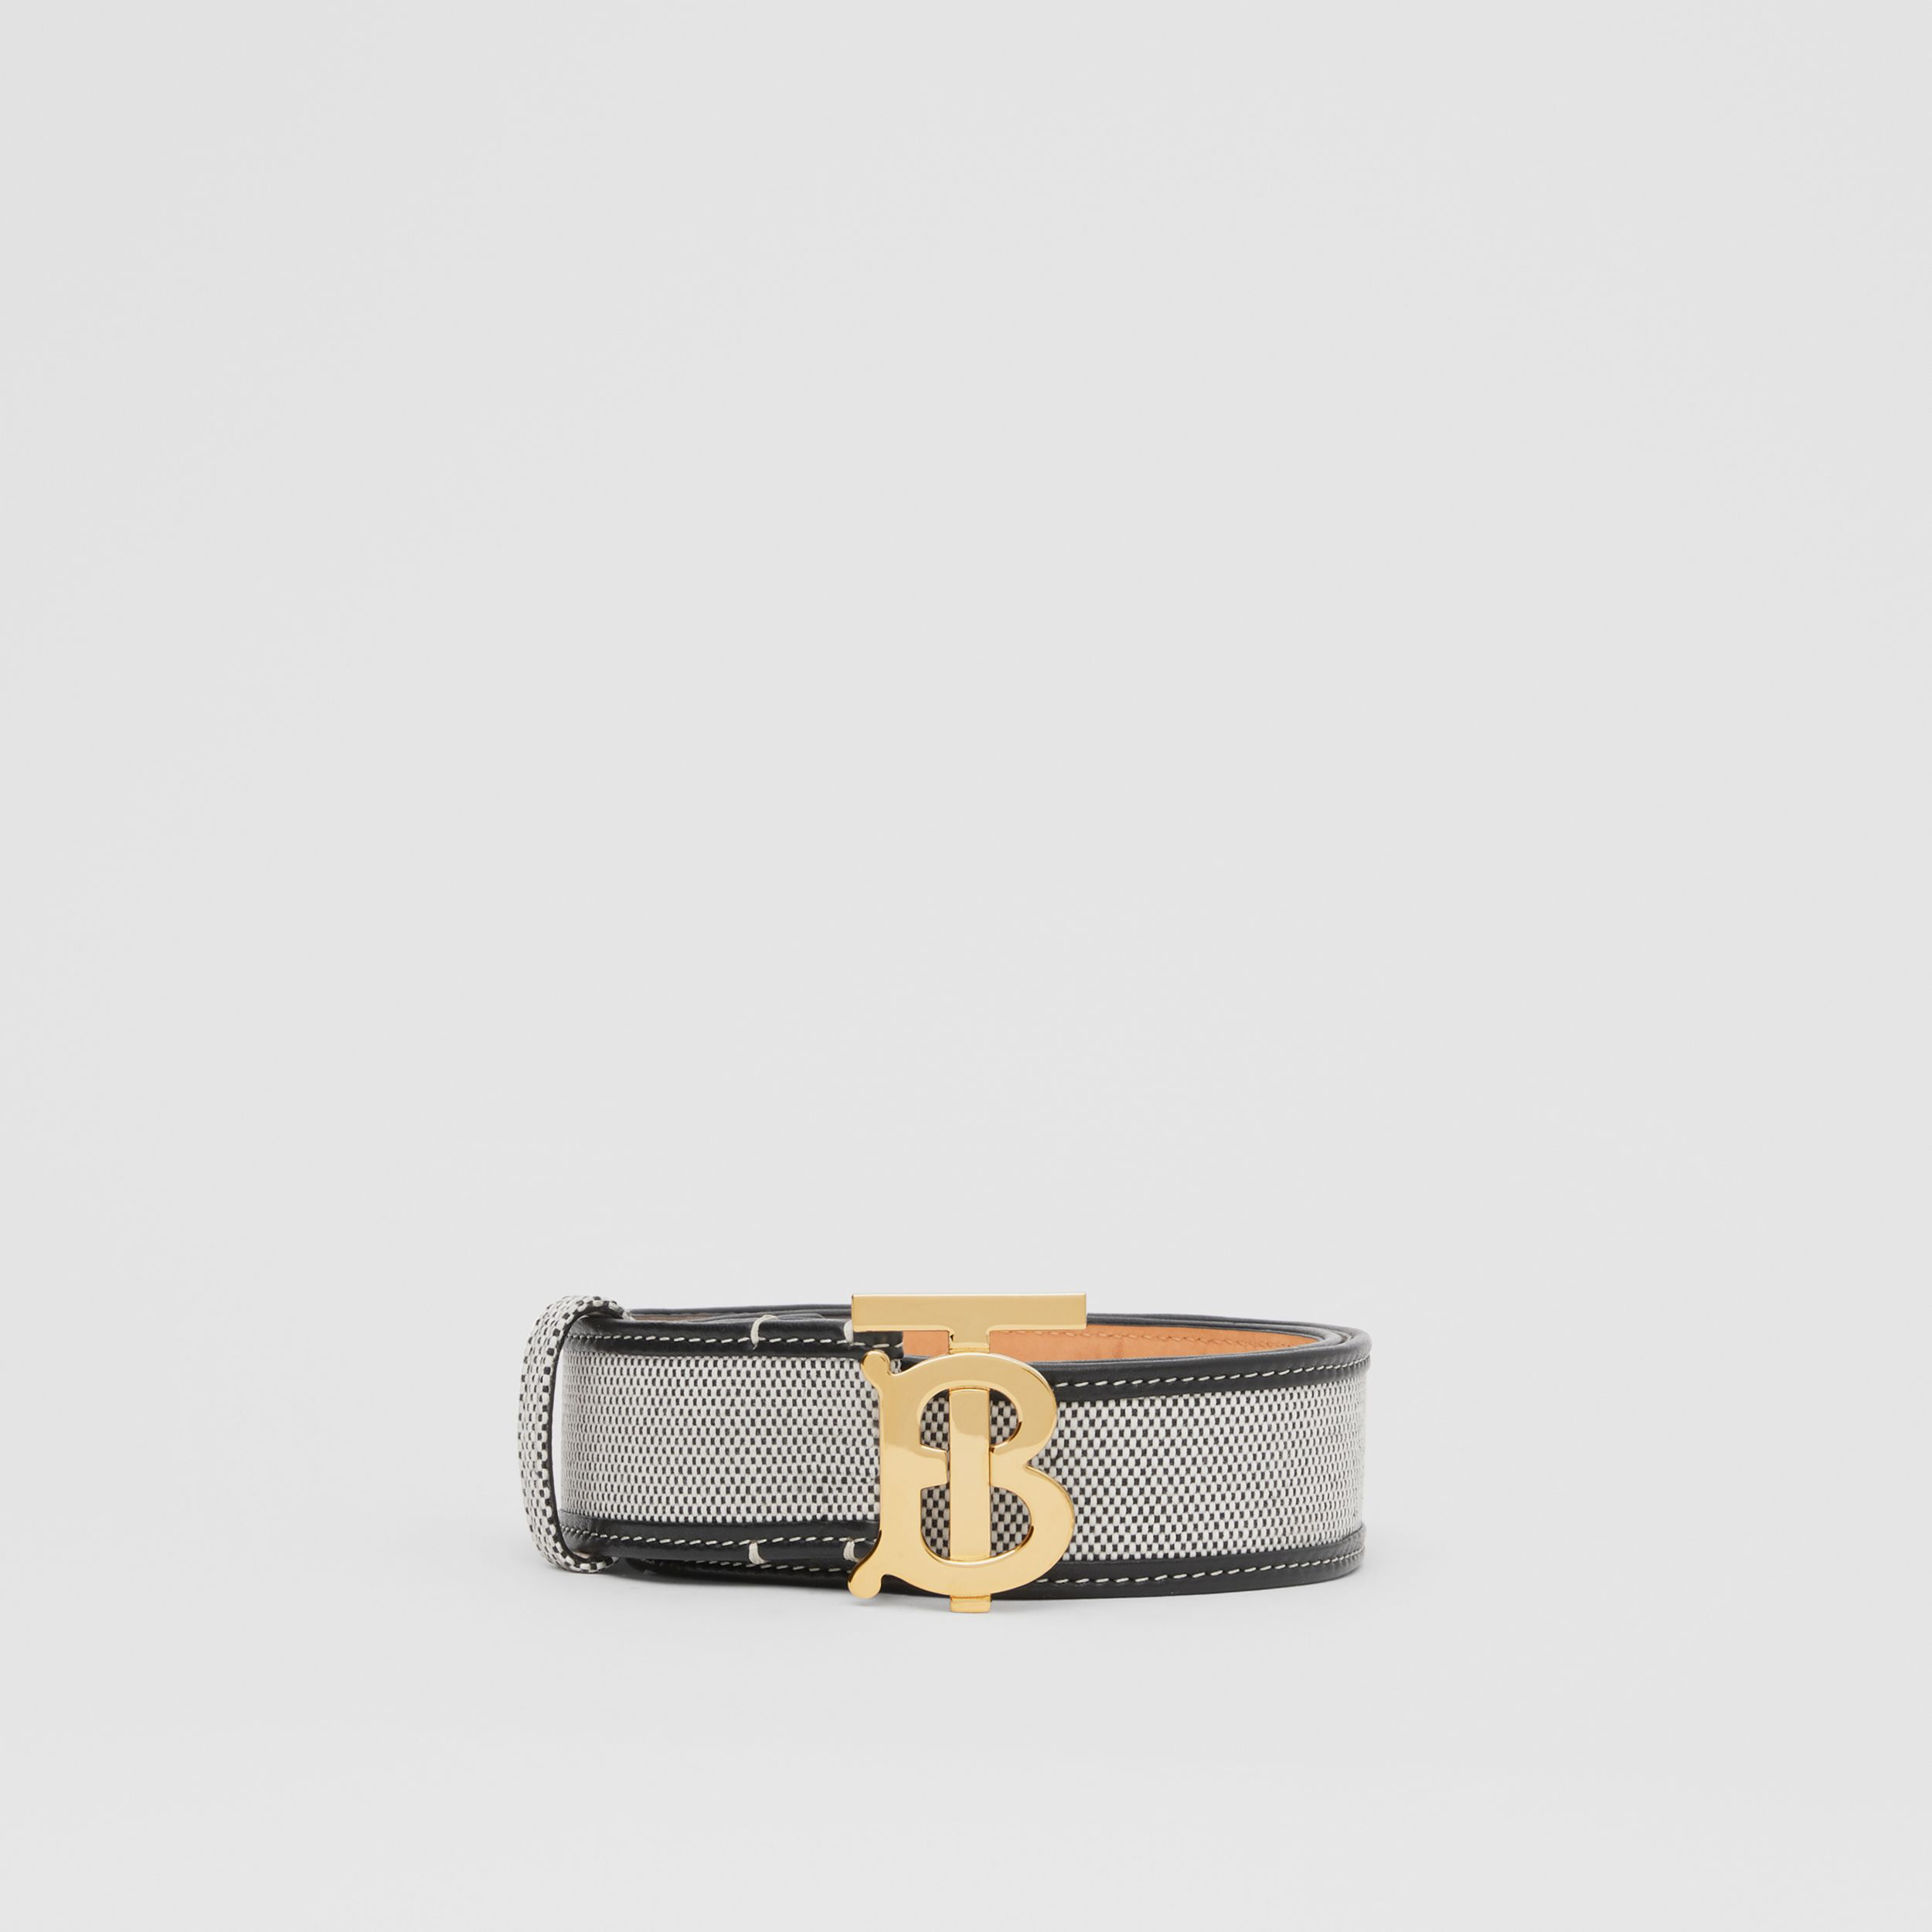 Monogram Motif Canvas and Leather Belt in Black - Women | Burberry - 4